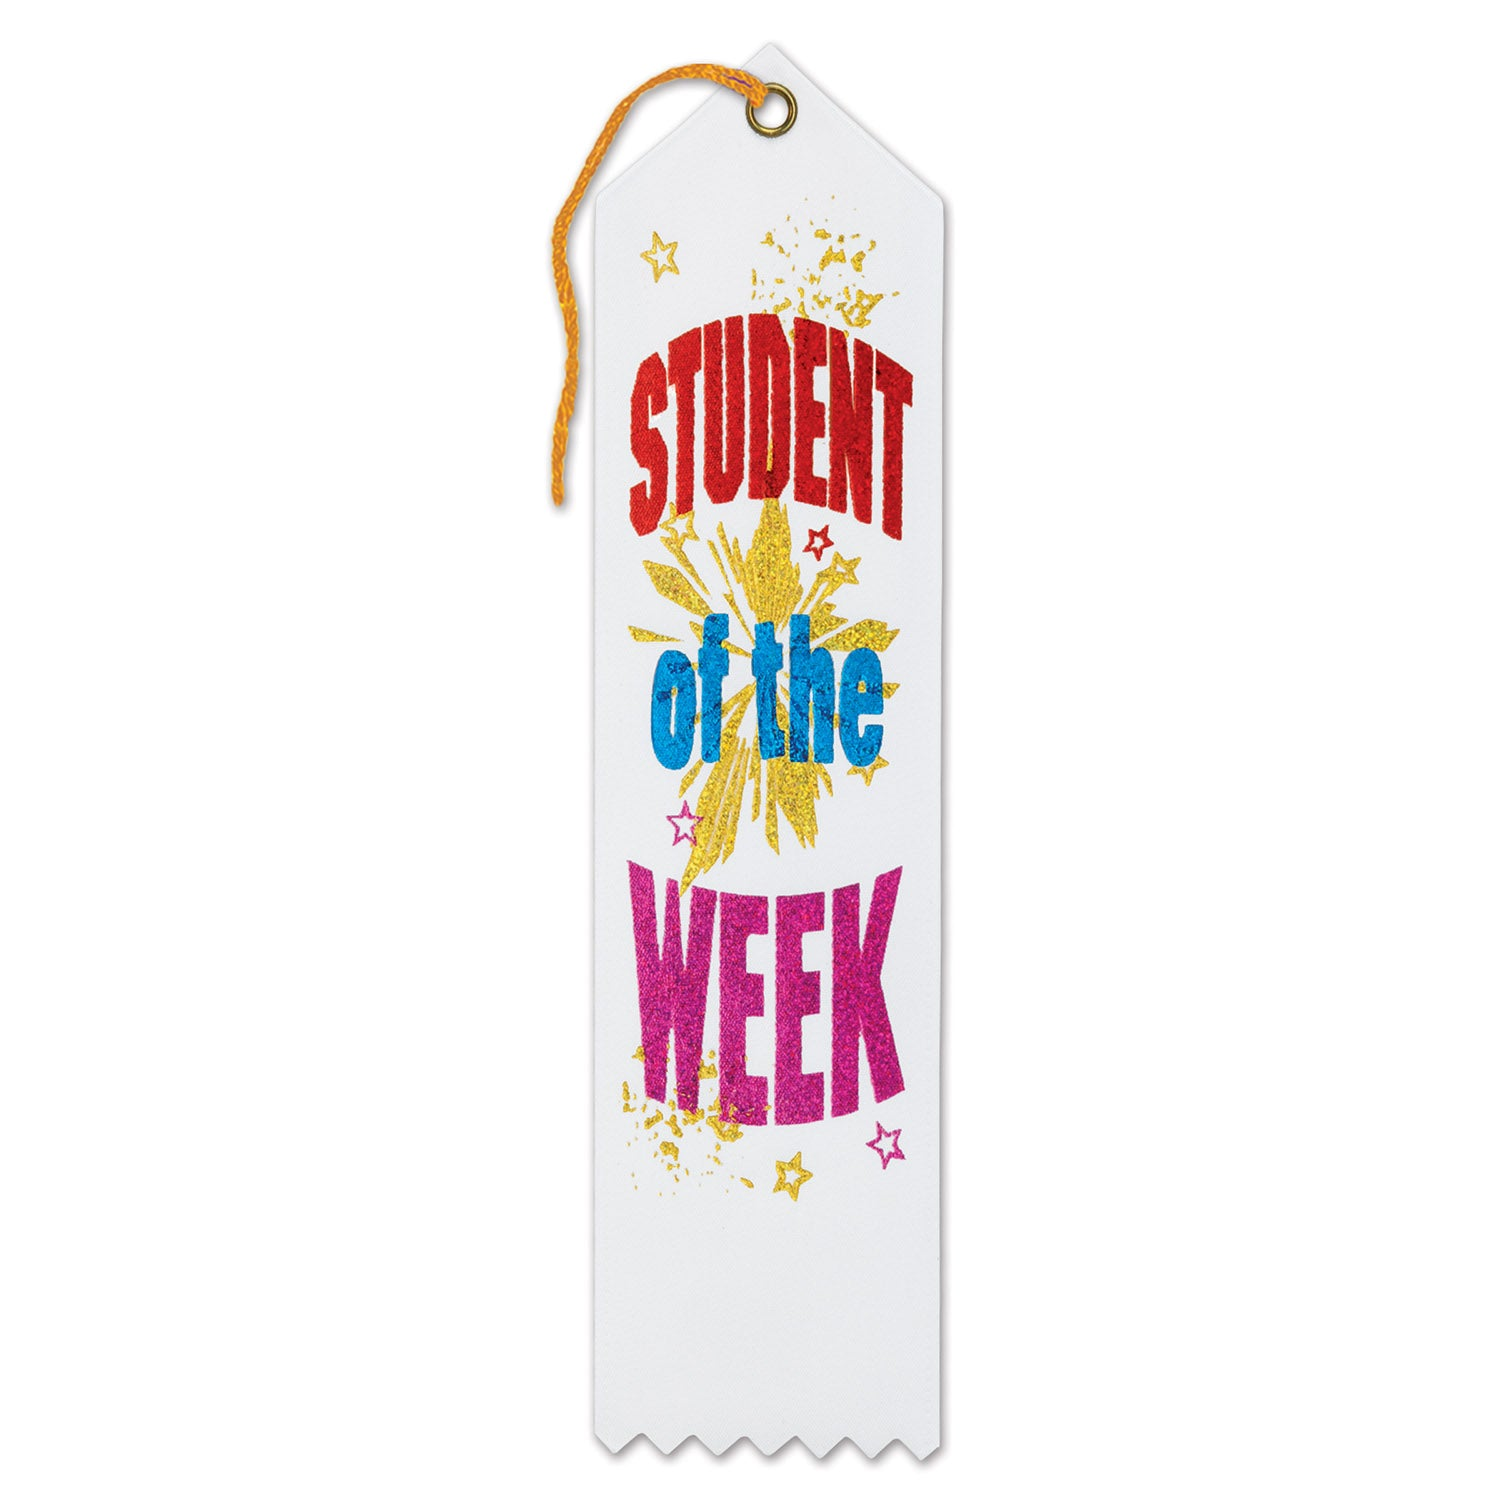 Student Of The Week Award Ribbon by Beistle - School Awards and Supplies Decorations